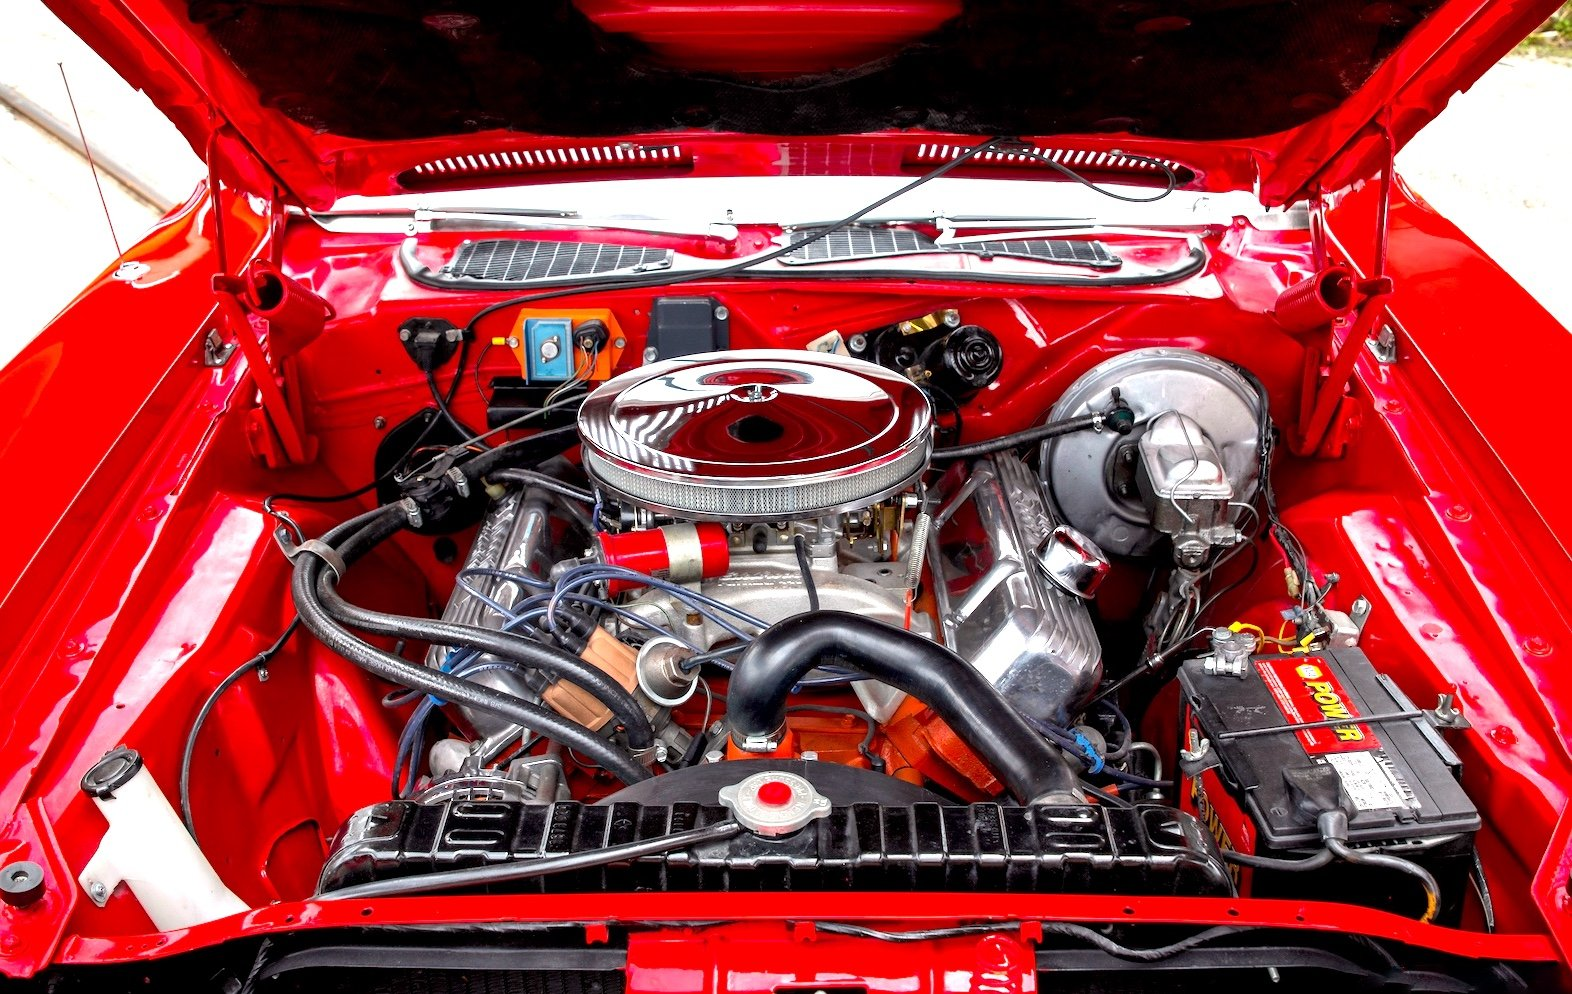 1973 Plymouth Barracuda 440 Big Block - FULLY RESTORED For Sale (picture 5 of 6)